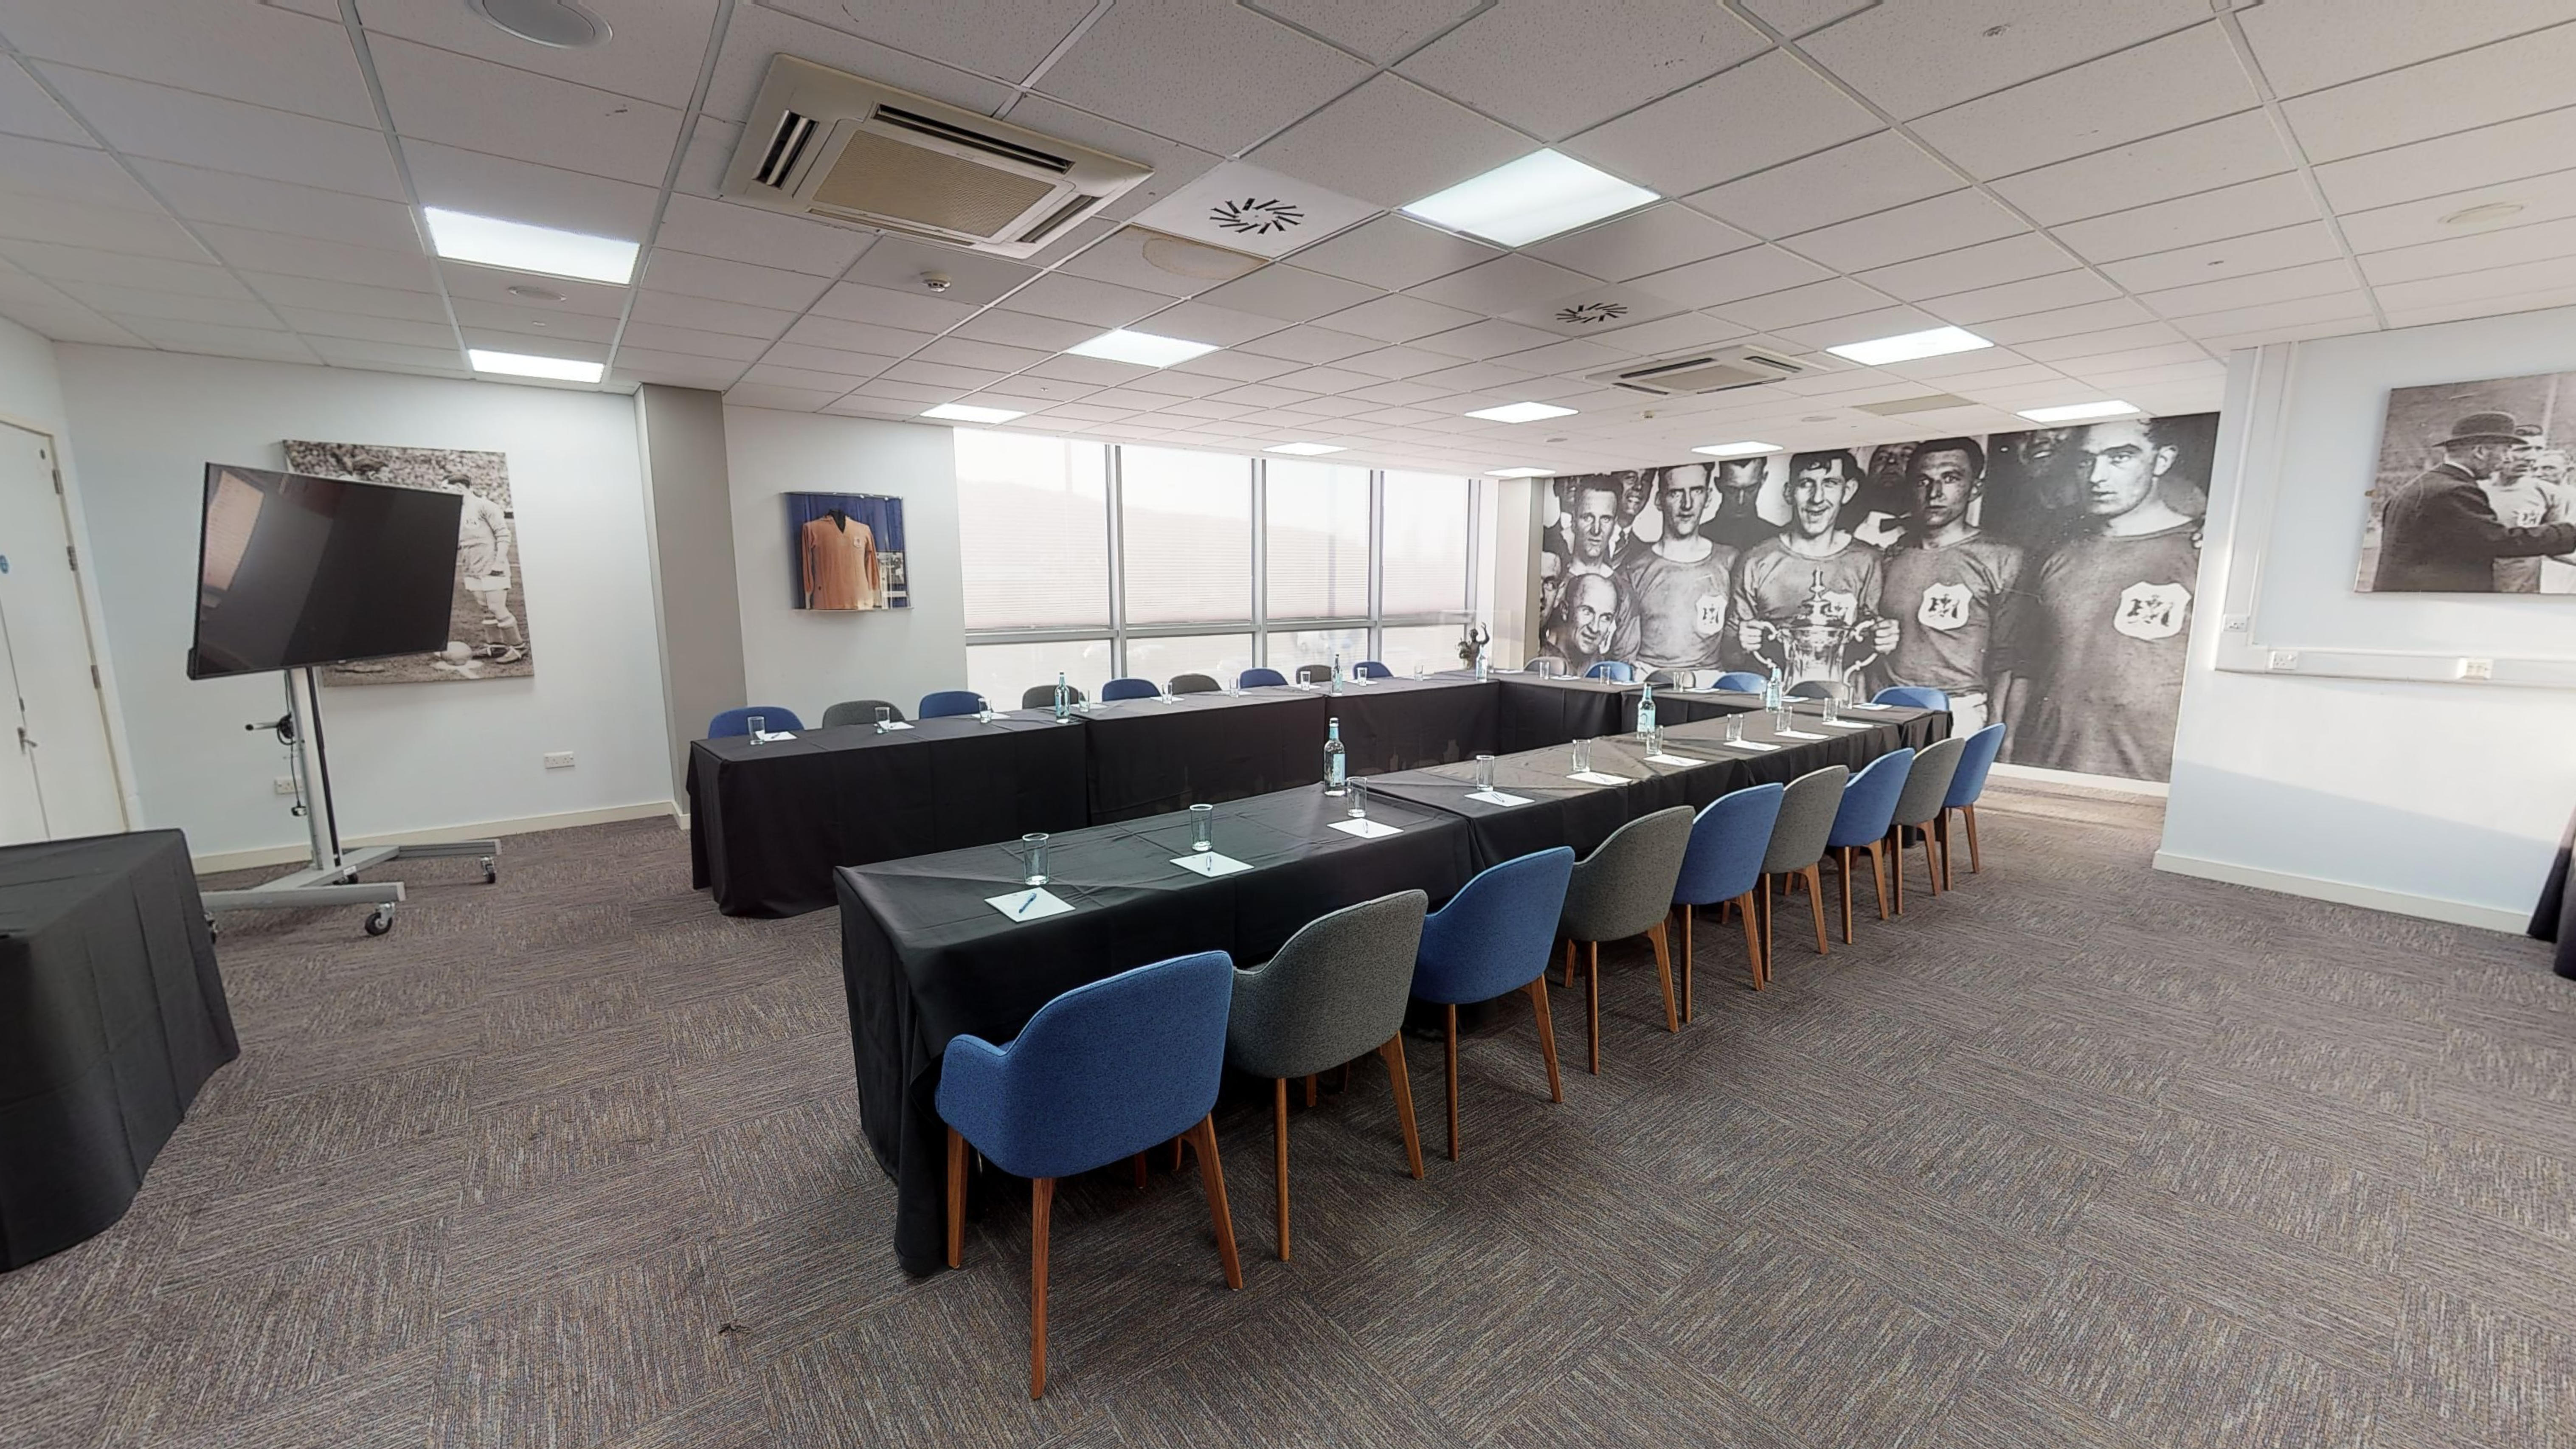 Cardiff City Meetings Events Fred Keenor Suite U Shape